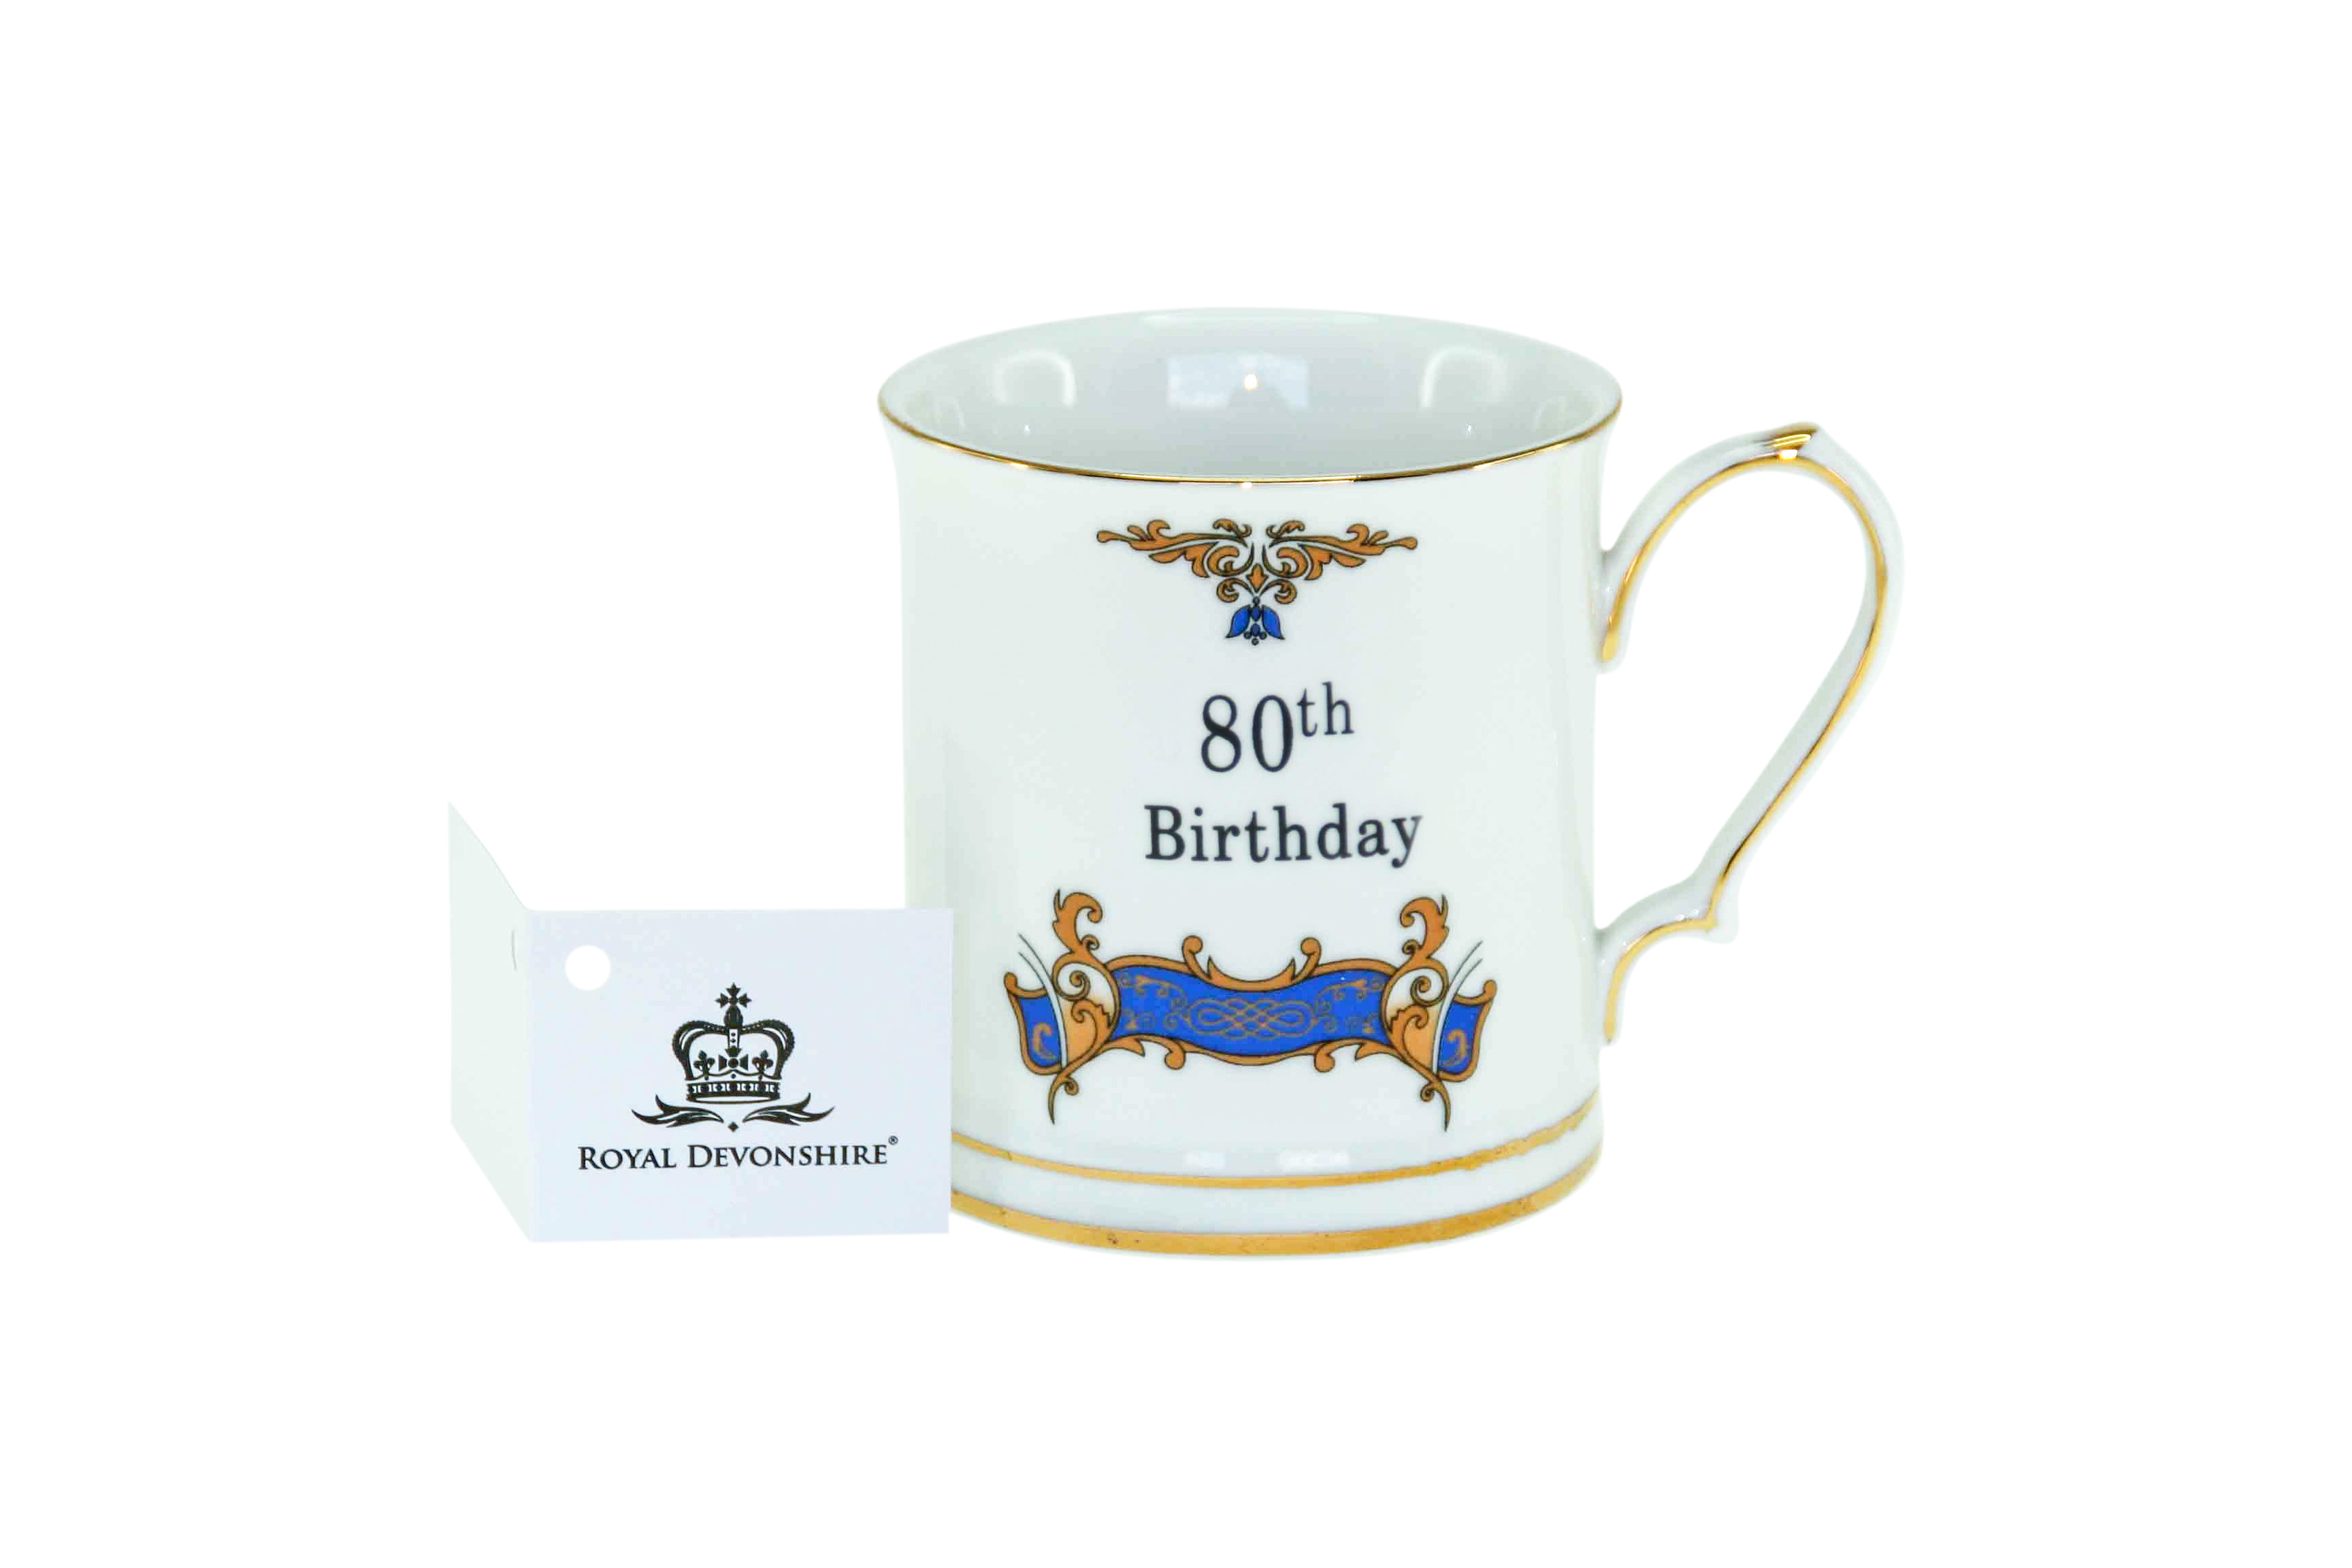 80th Birthday Tankard